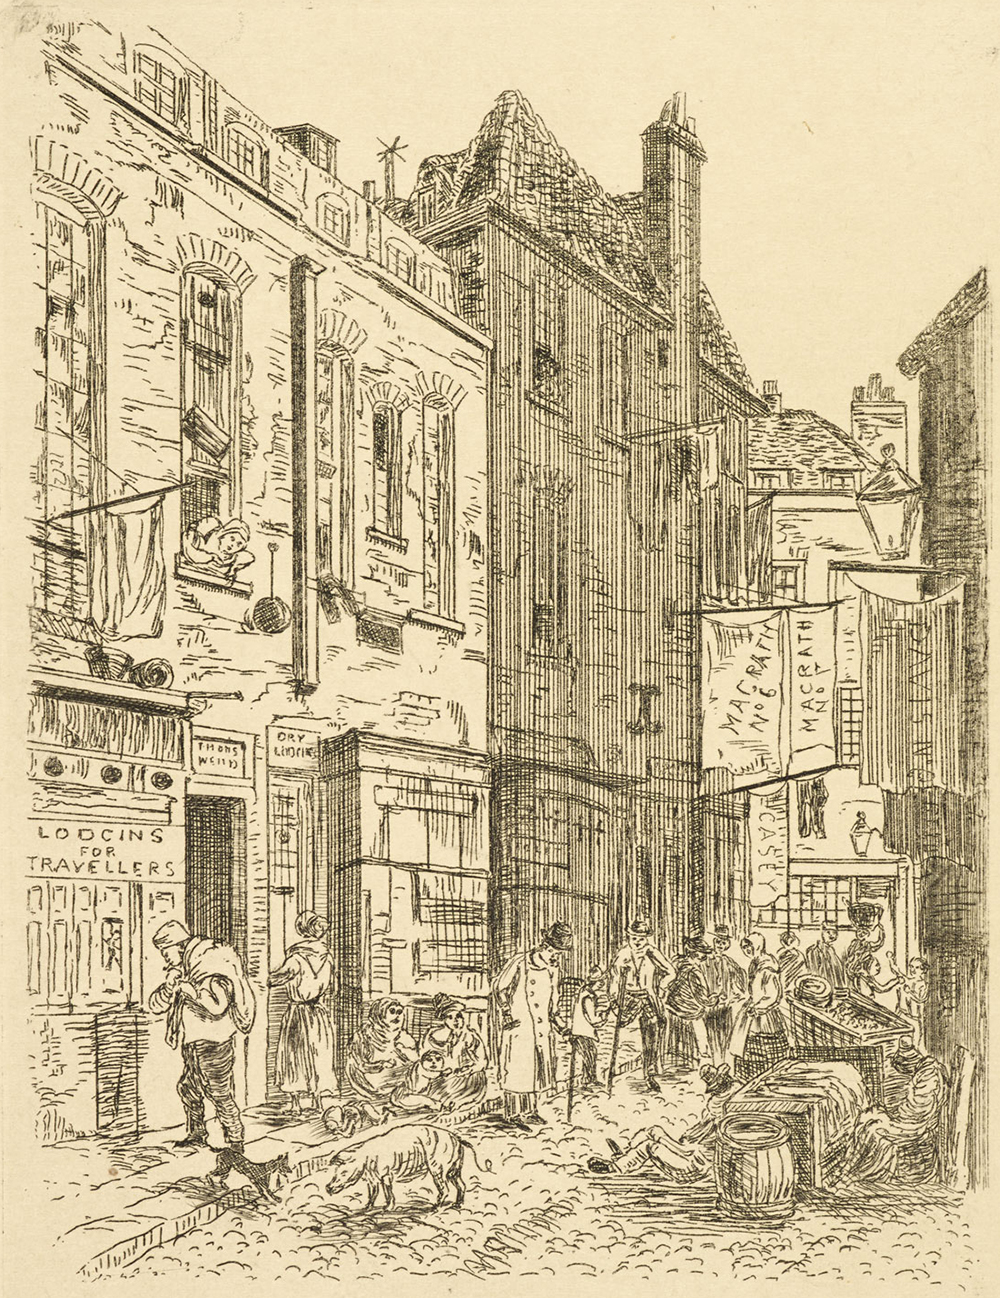 Printed sketch of the Rookery in St. Giles, from John Forster's The Life of Dickens, 1817. British Library.